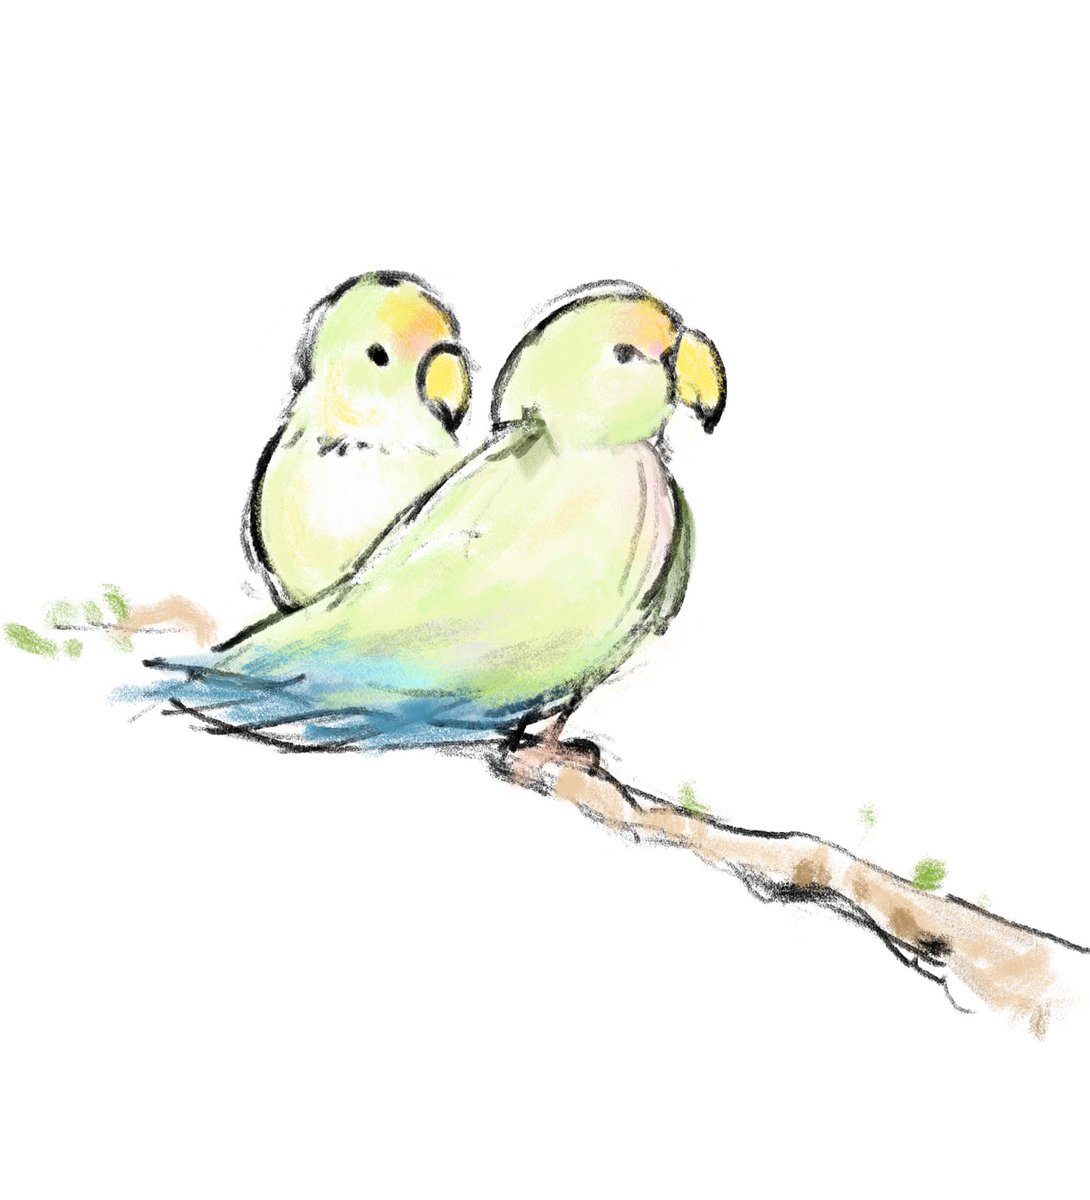 Kerry Edward On Twitter Daughter S Lovebirds Minus The Cage Adobefresco Illustration Handdrawn Sketch Lovebirds Couple